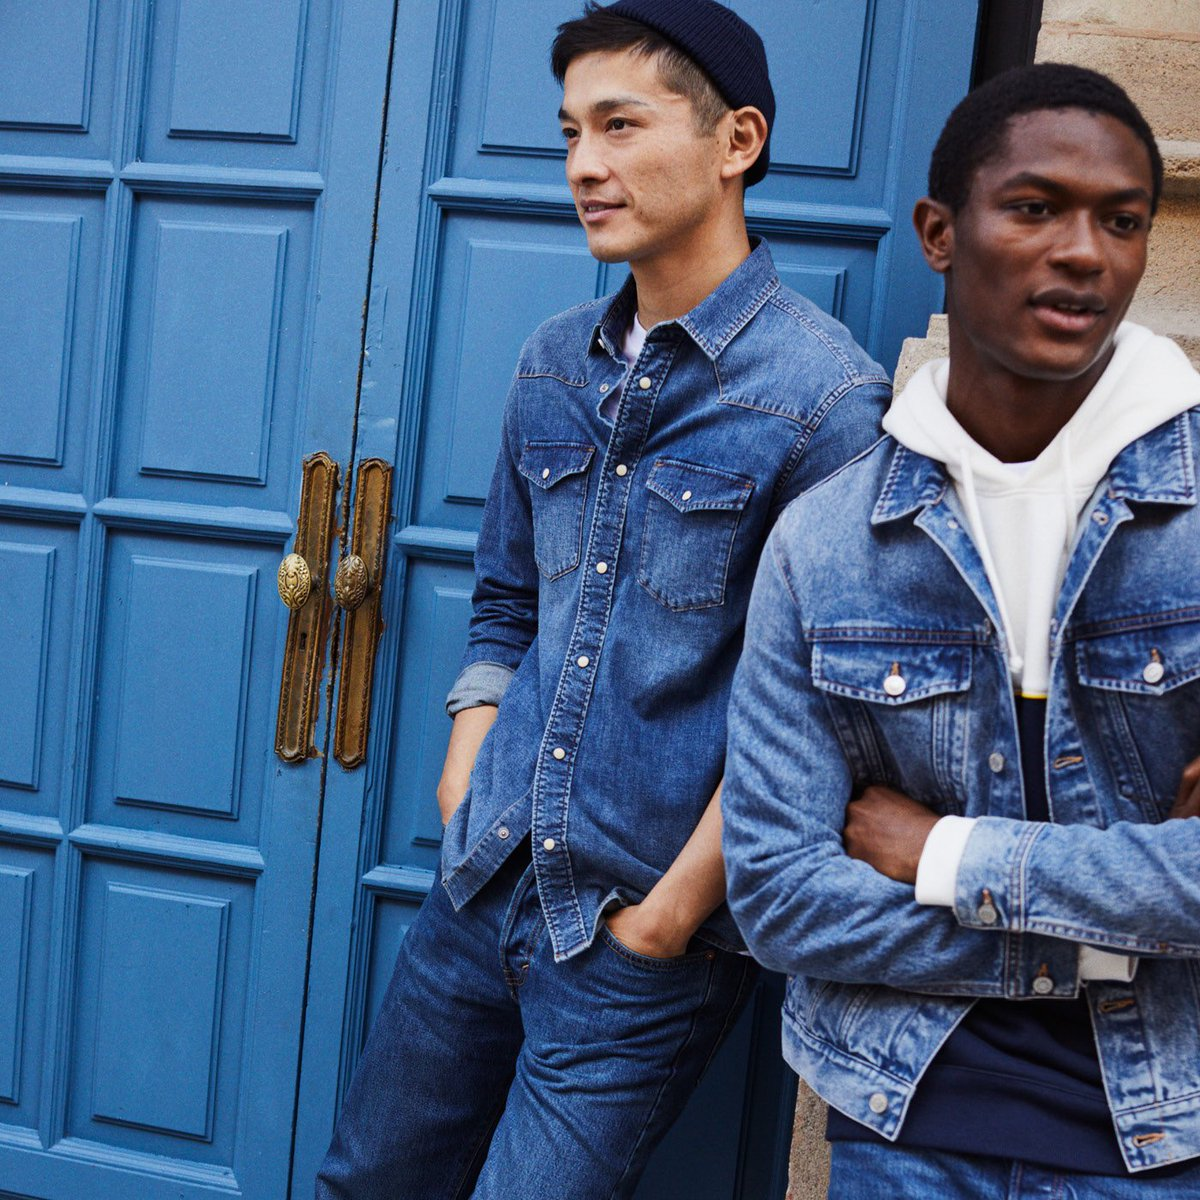 Looking for a fresh denim shirt or jacket? Get both online or in store. #HMMan https://t.co/NxOJwgv1nA https://t.co/SSBgGcz4Qk